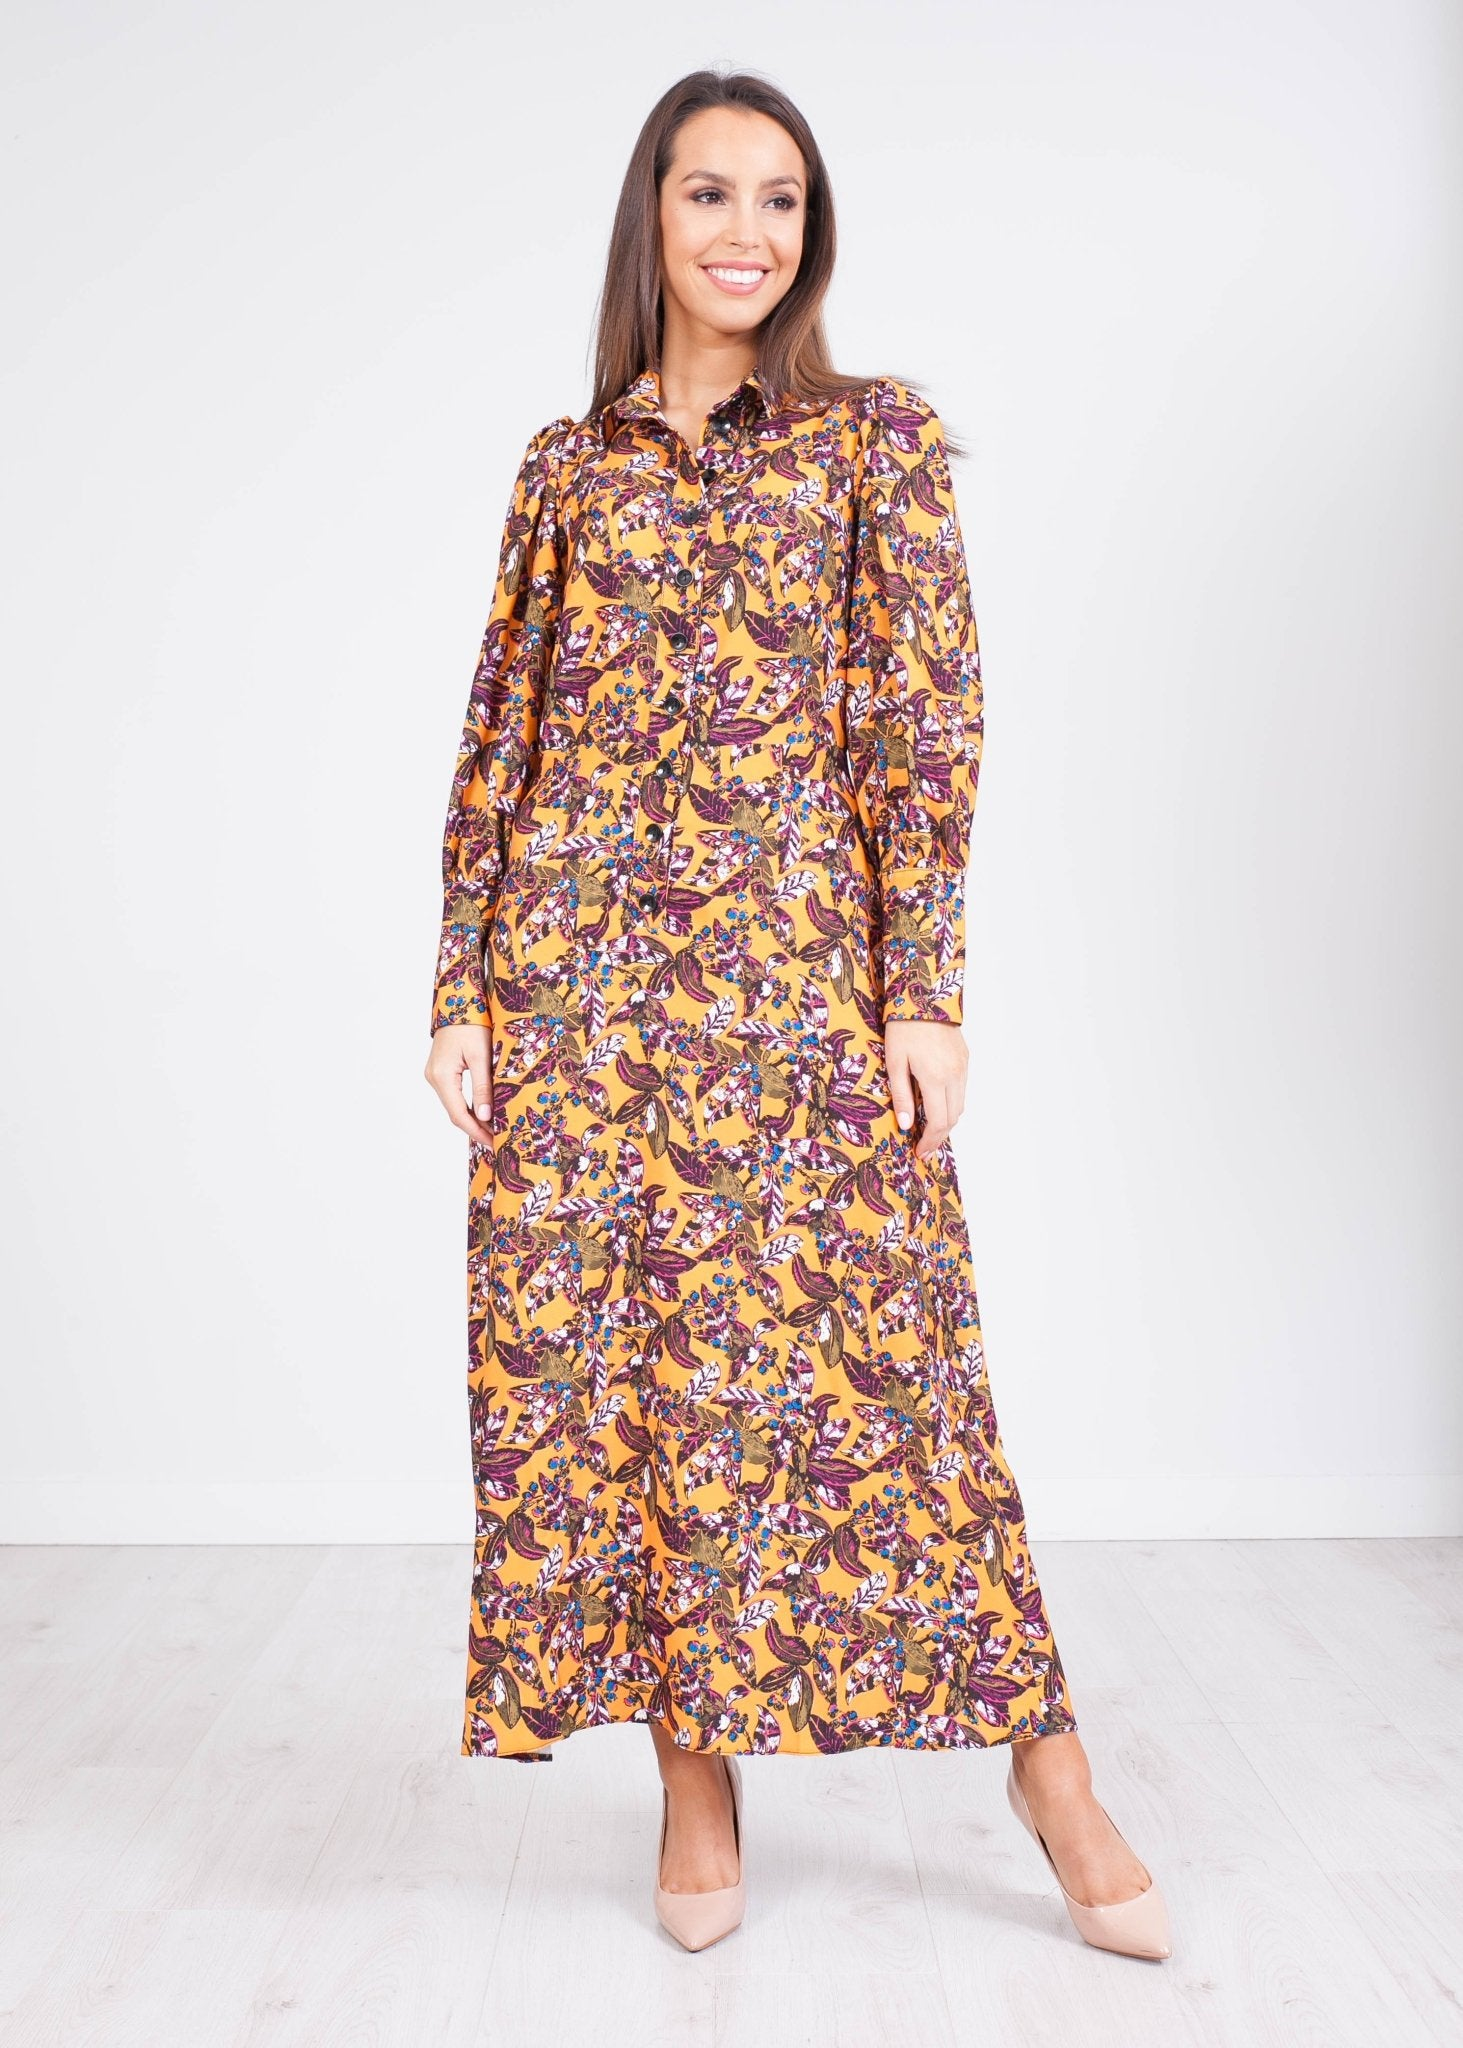 Cara Mustard Midi Dress - The Walk in Wardrobe